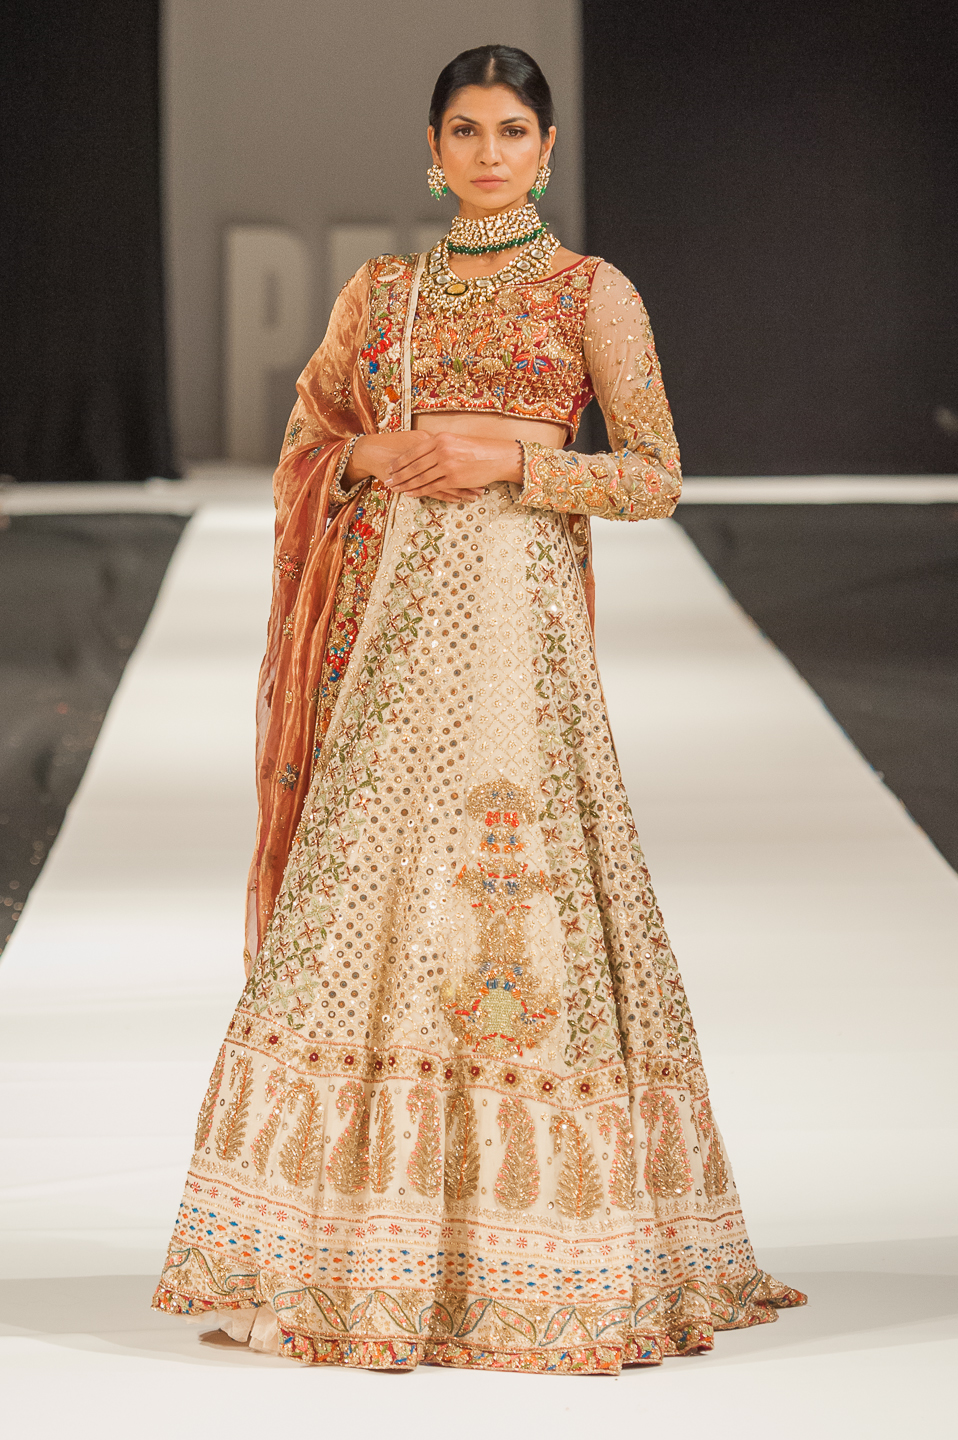 Sheeba Kapadia - Pakistan Fashion Week London - Photography by Shahid Malik